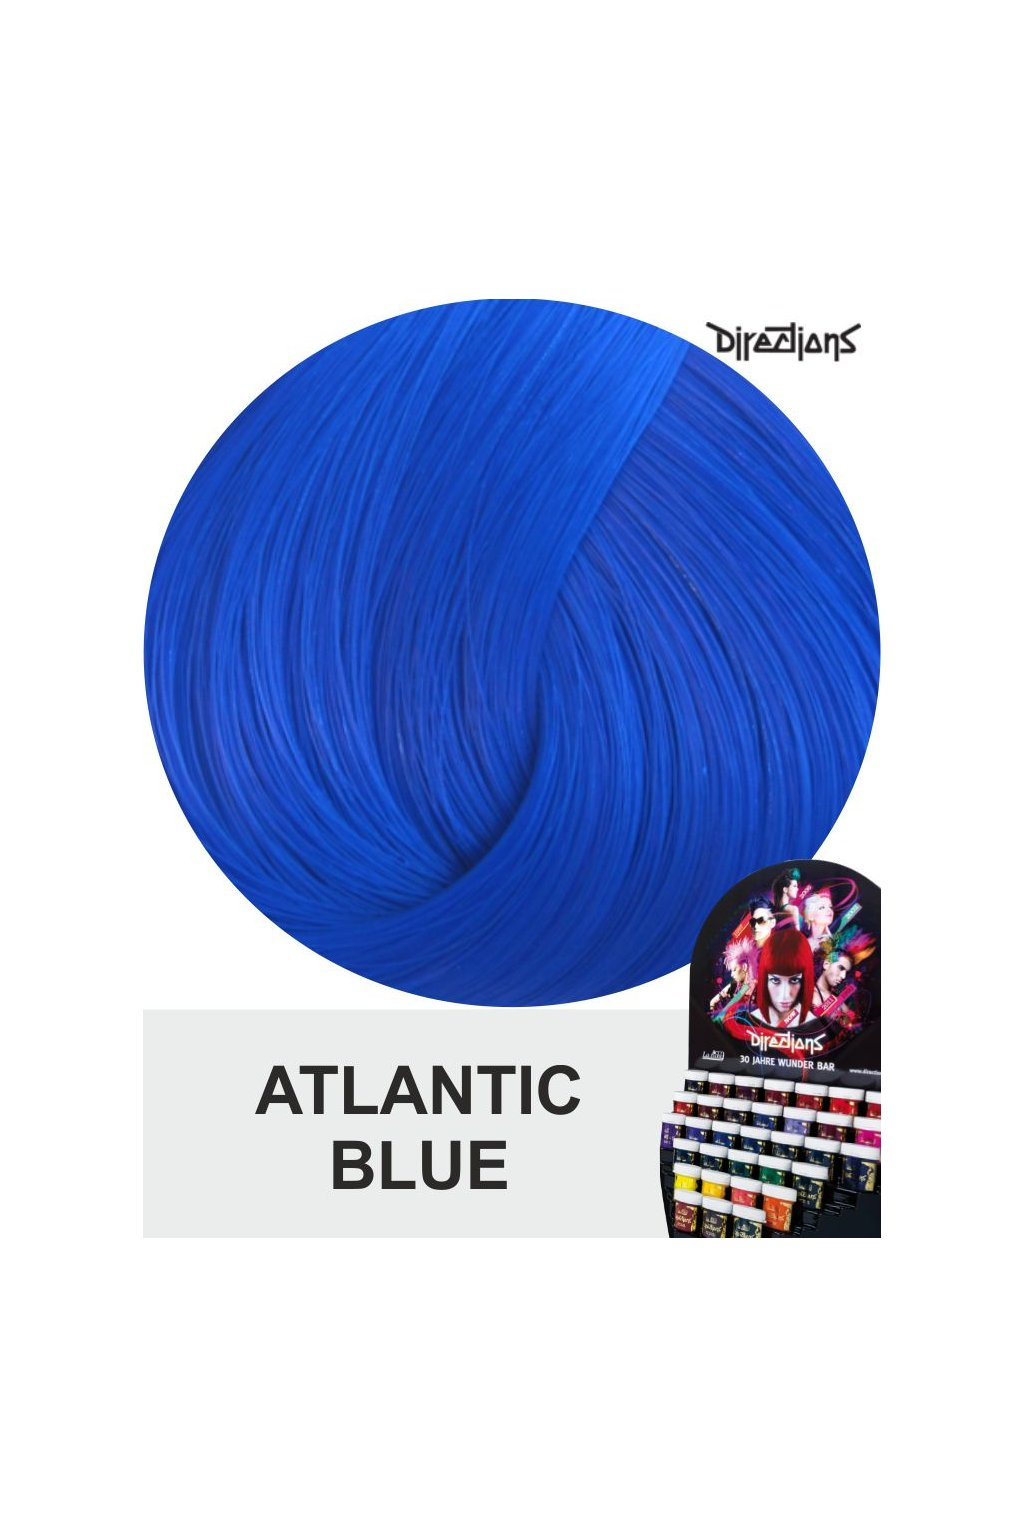 ATLANTIC BLUE